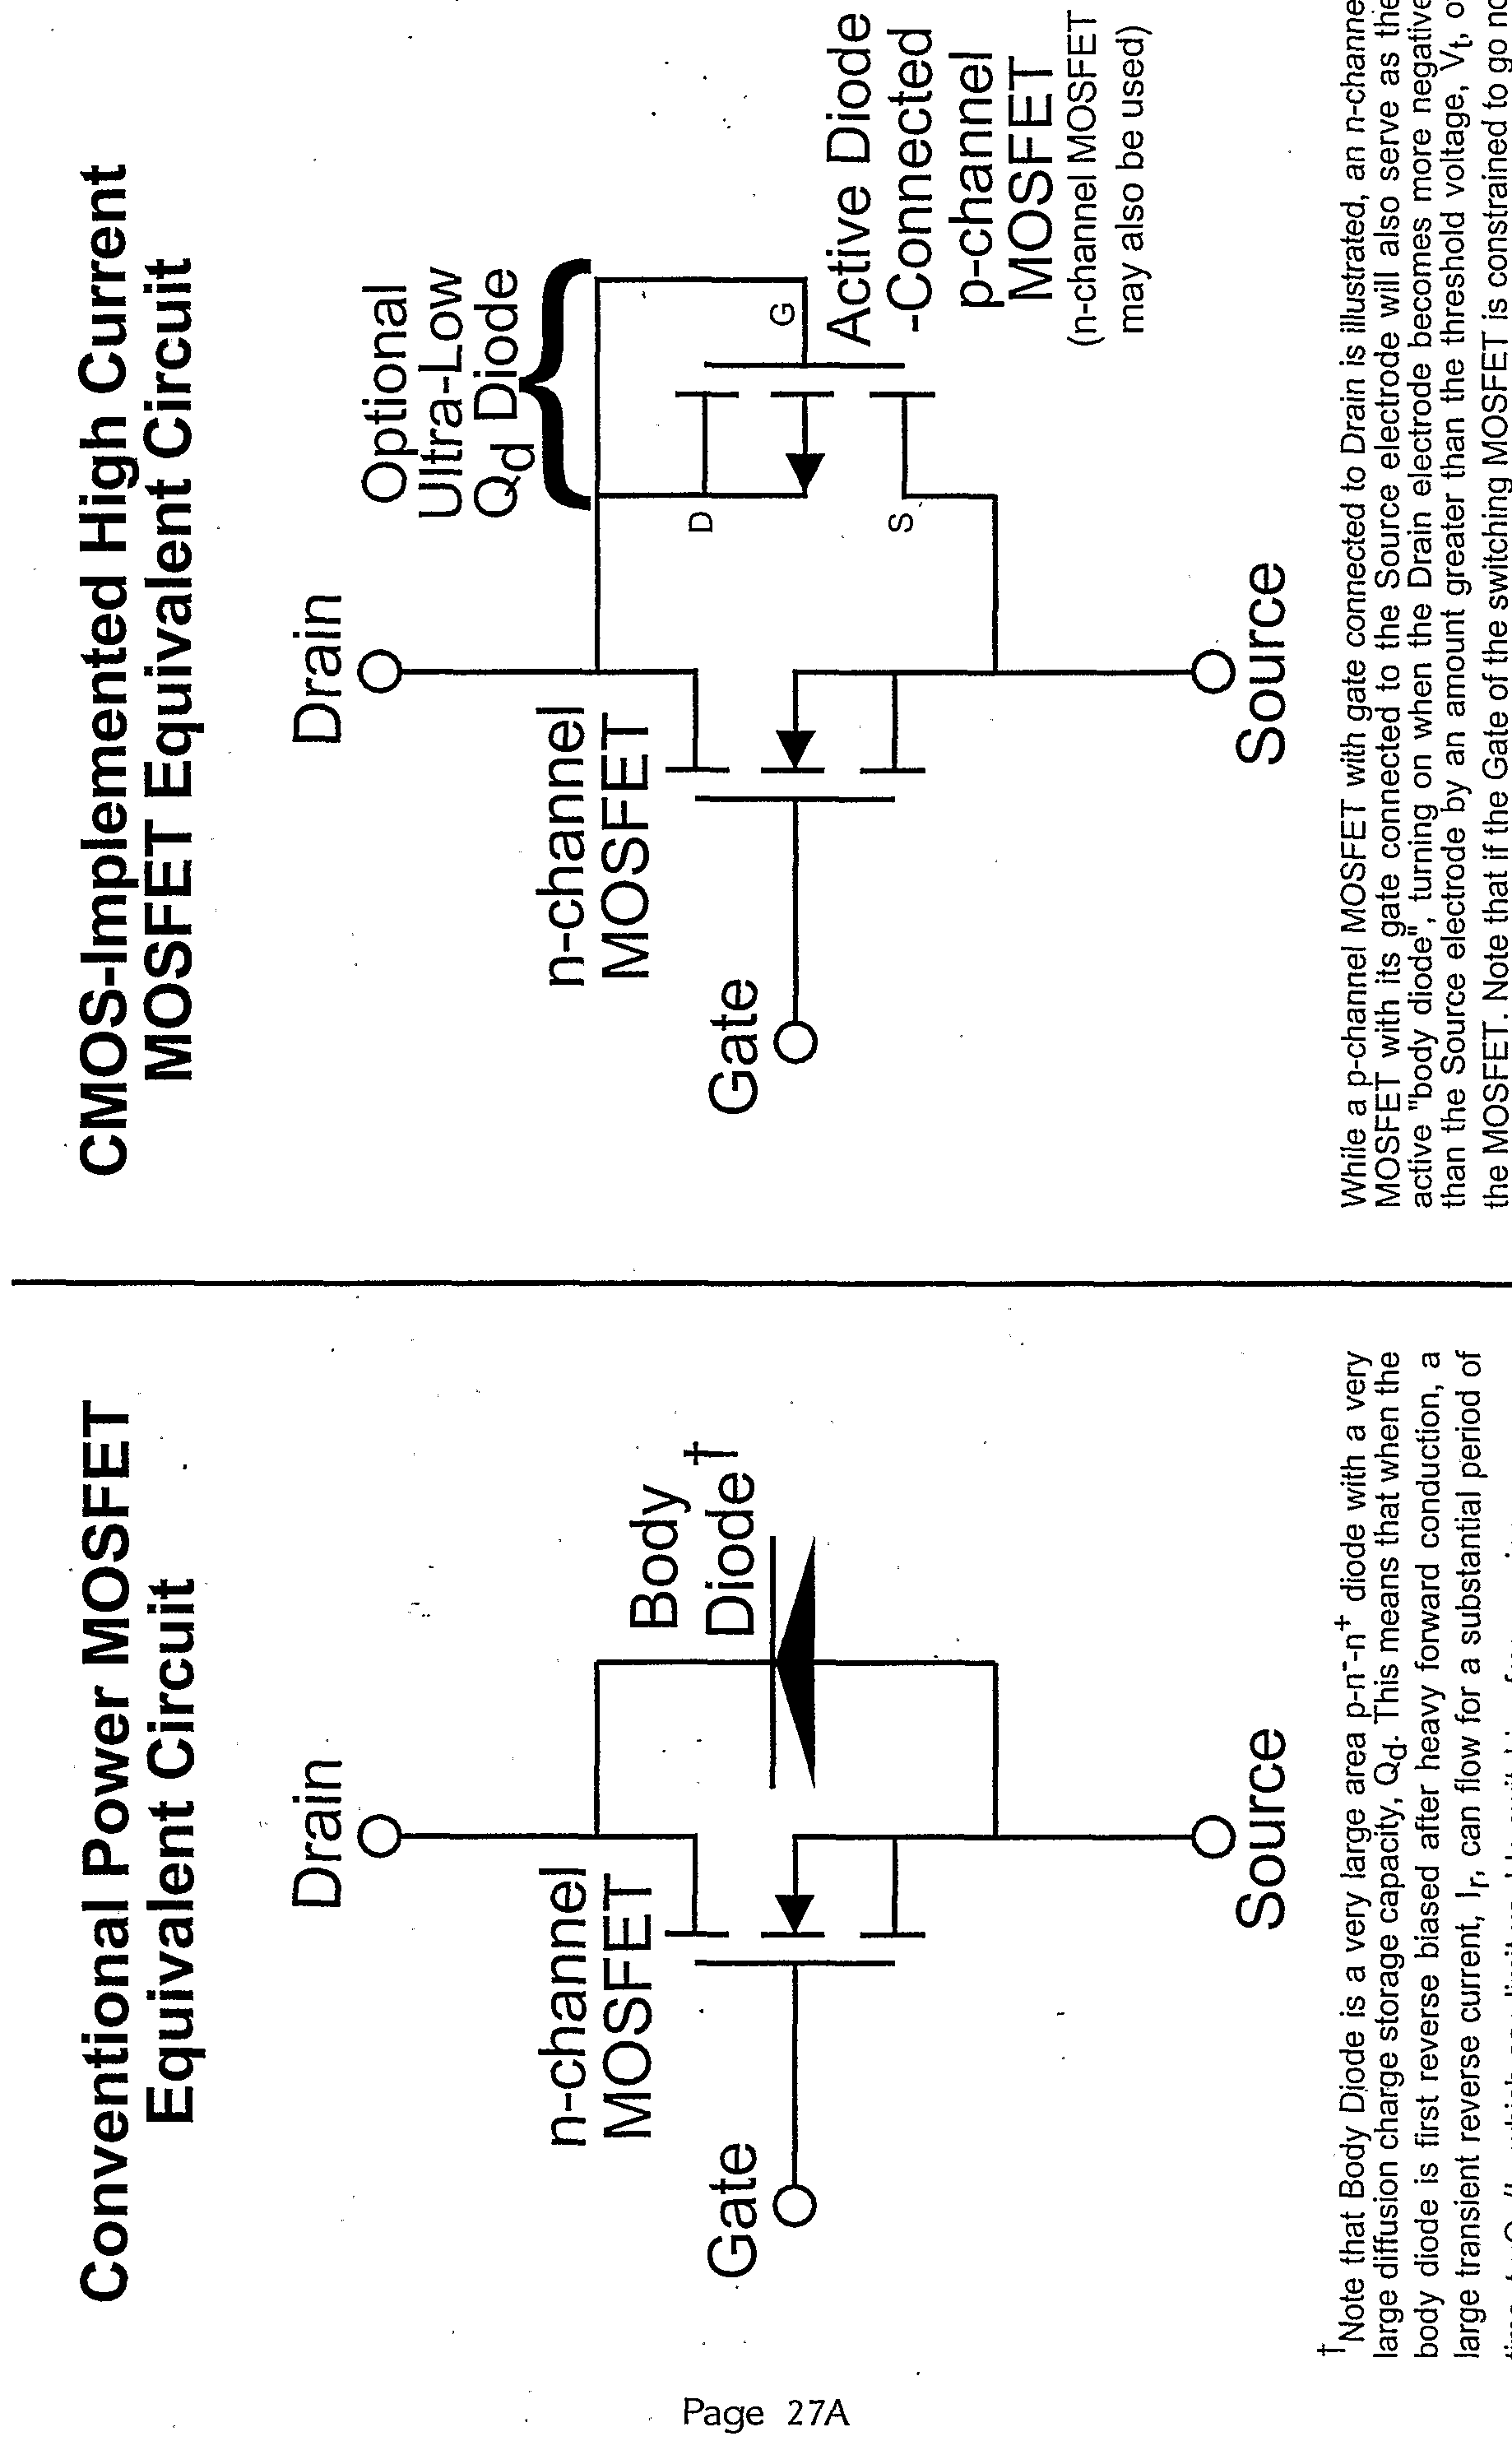 Wo2002007312a2 Power Semiconductor Switching Devices P N Junction Circuit Diagram Figure Imgf000059 0001